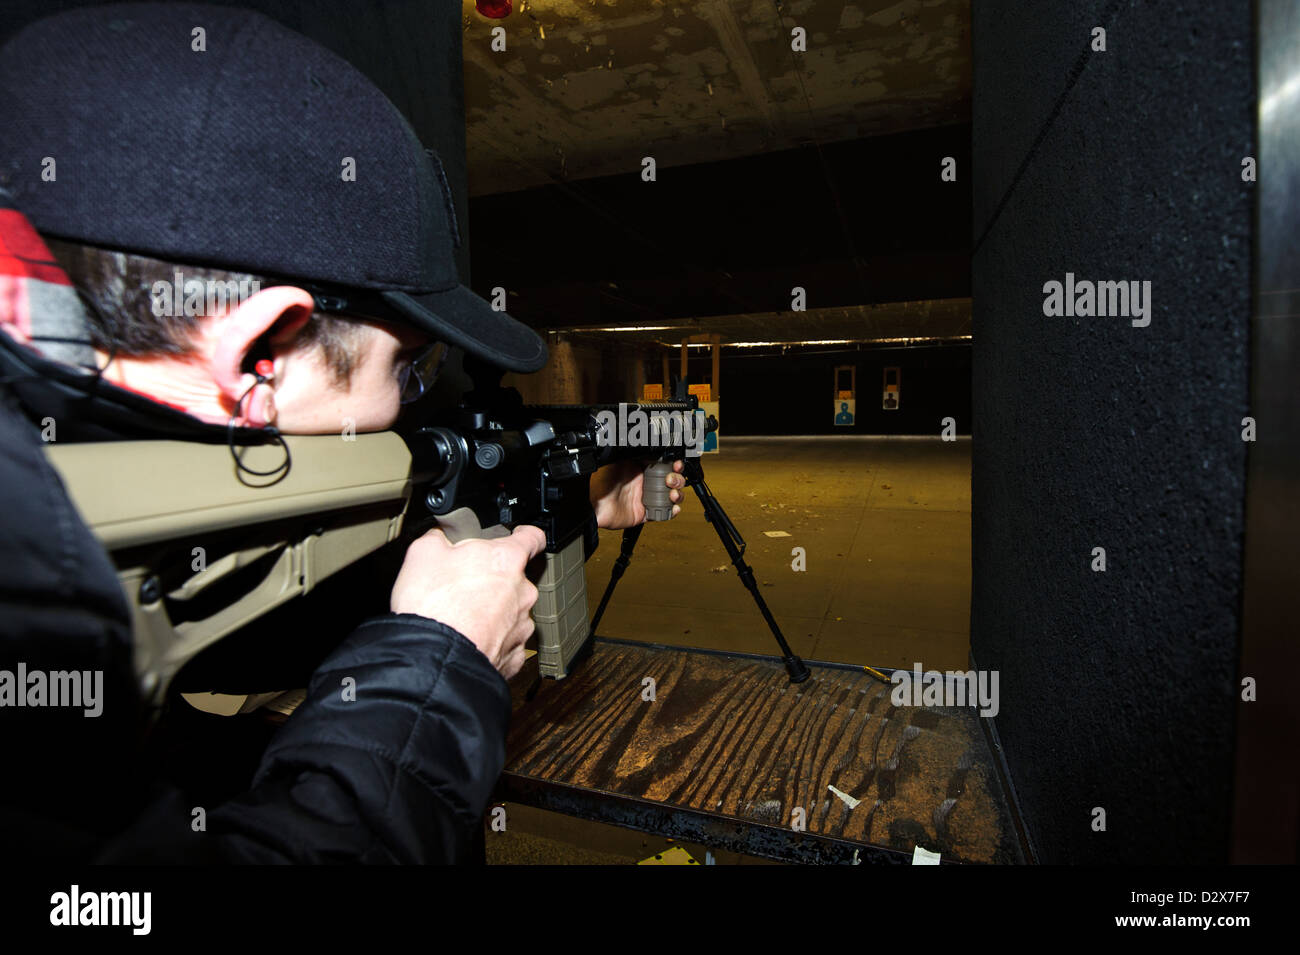 Target shooting with an AR-style target rifle at an indoor range Stock Photo